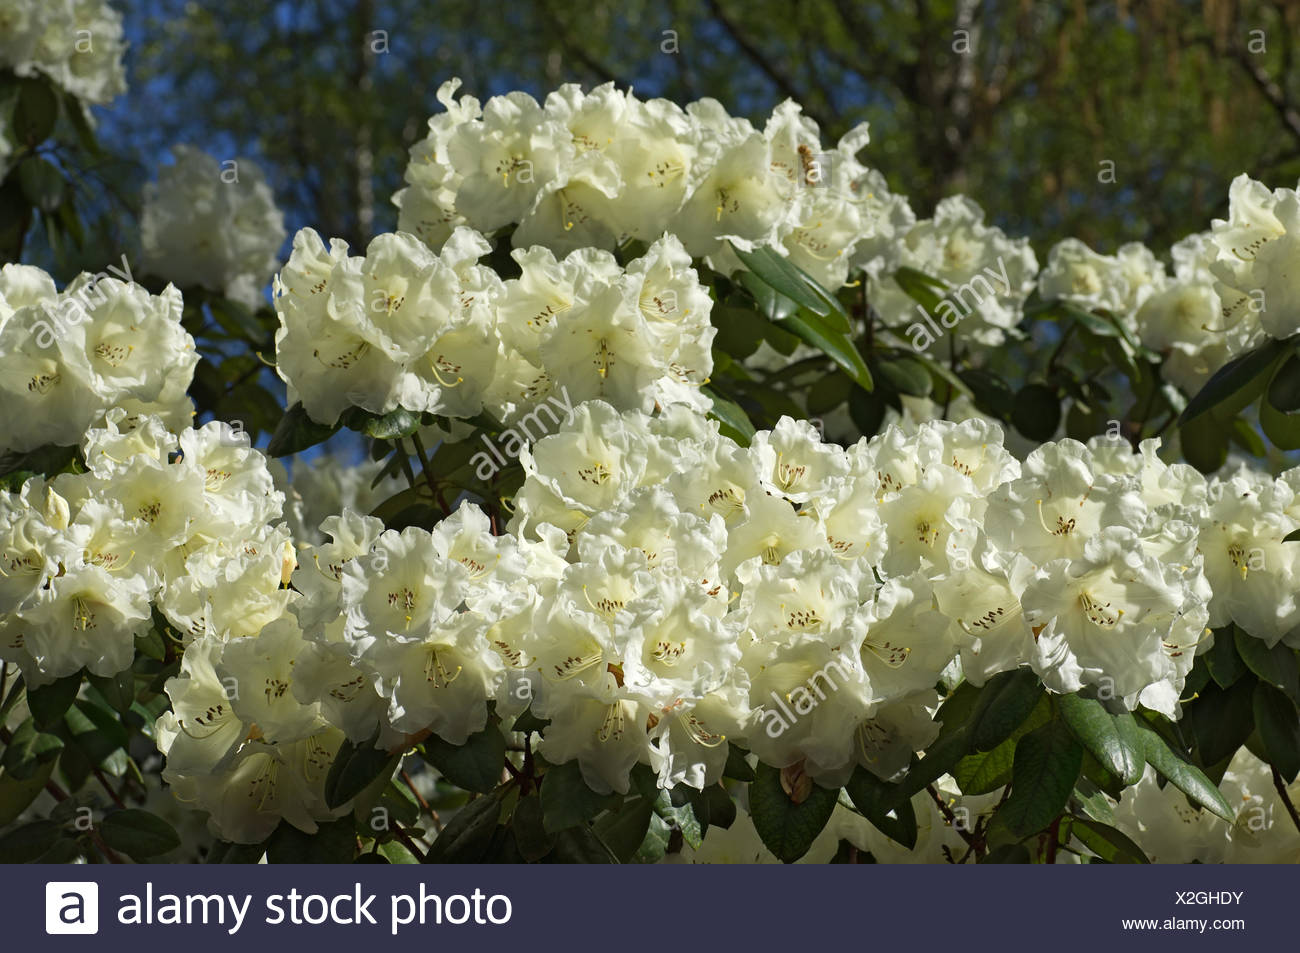 White Flowered Rhododendron Stock Photo 276960151 Alamy